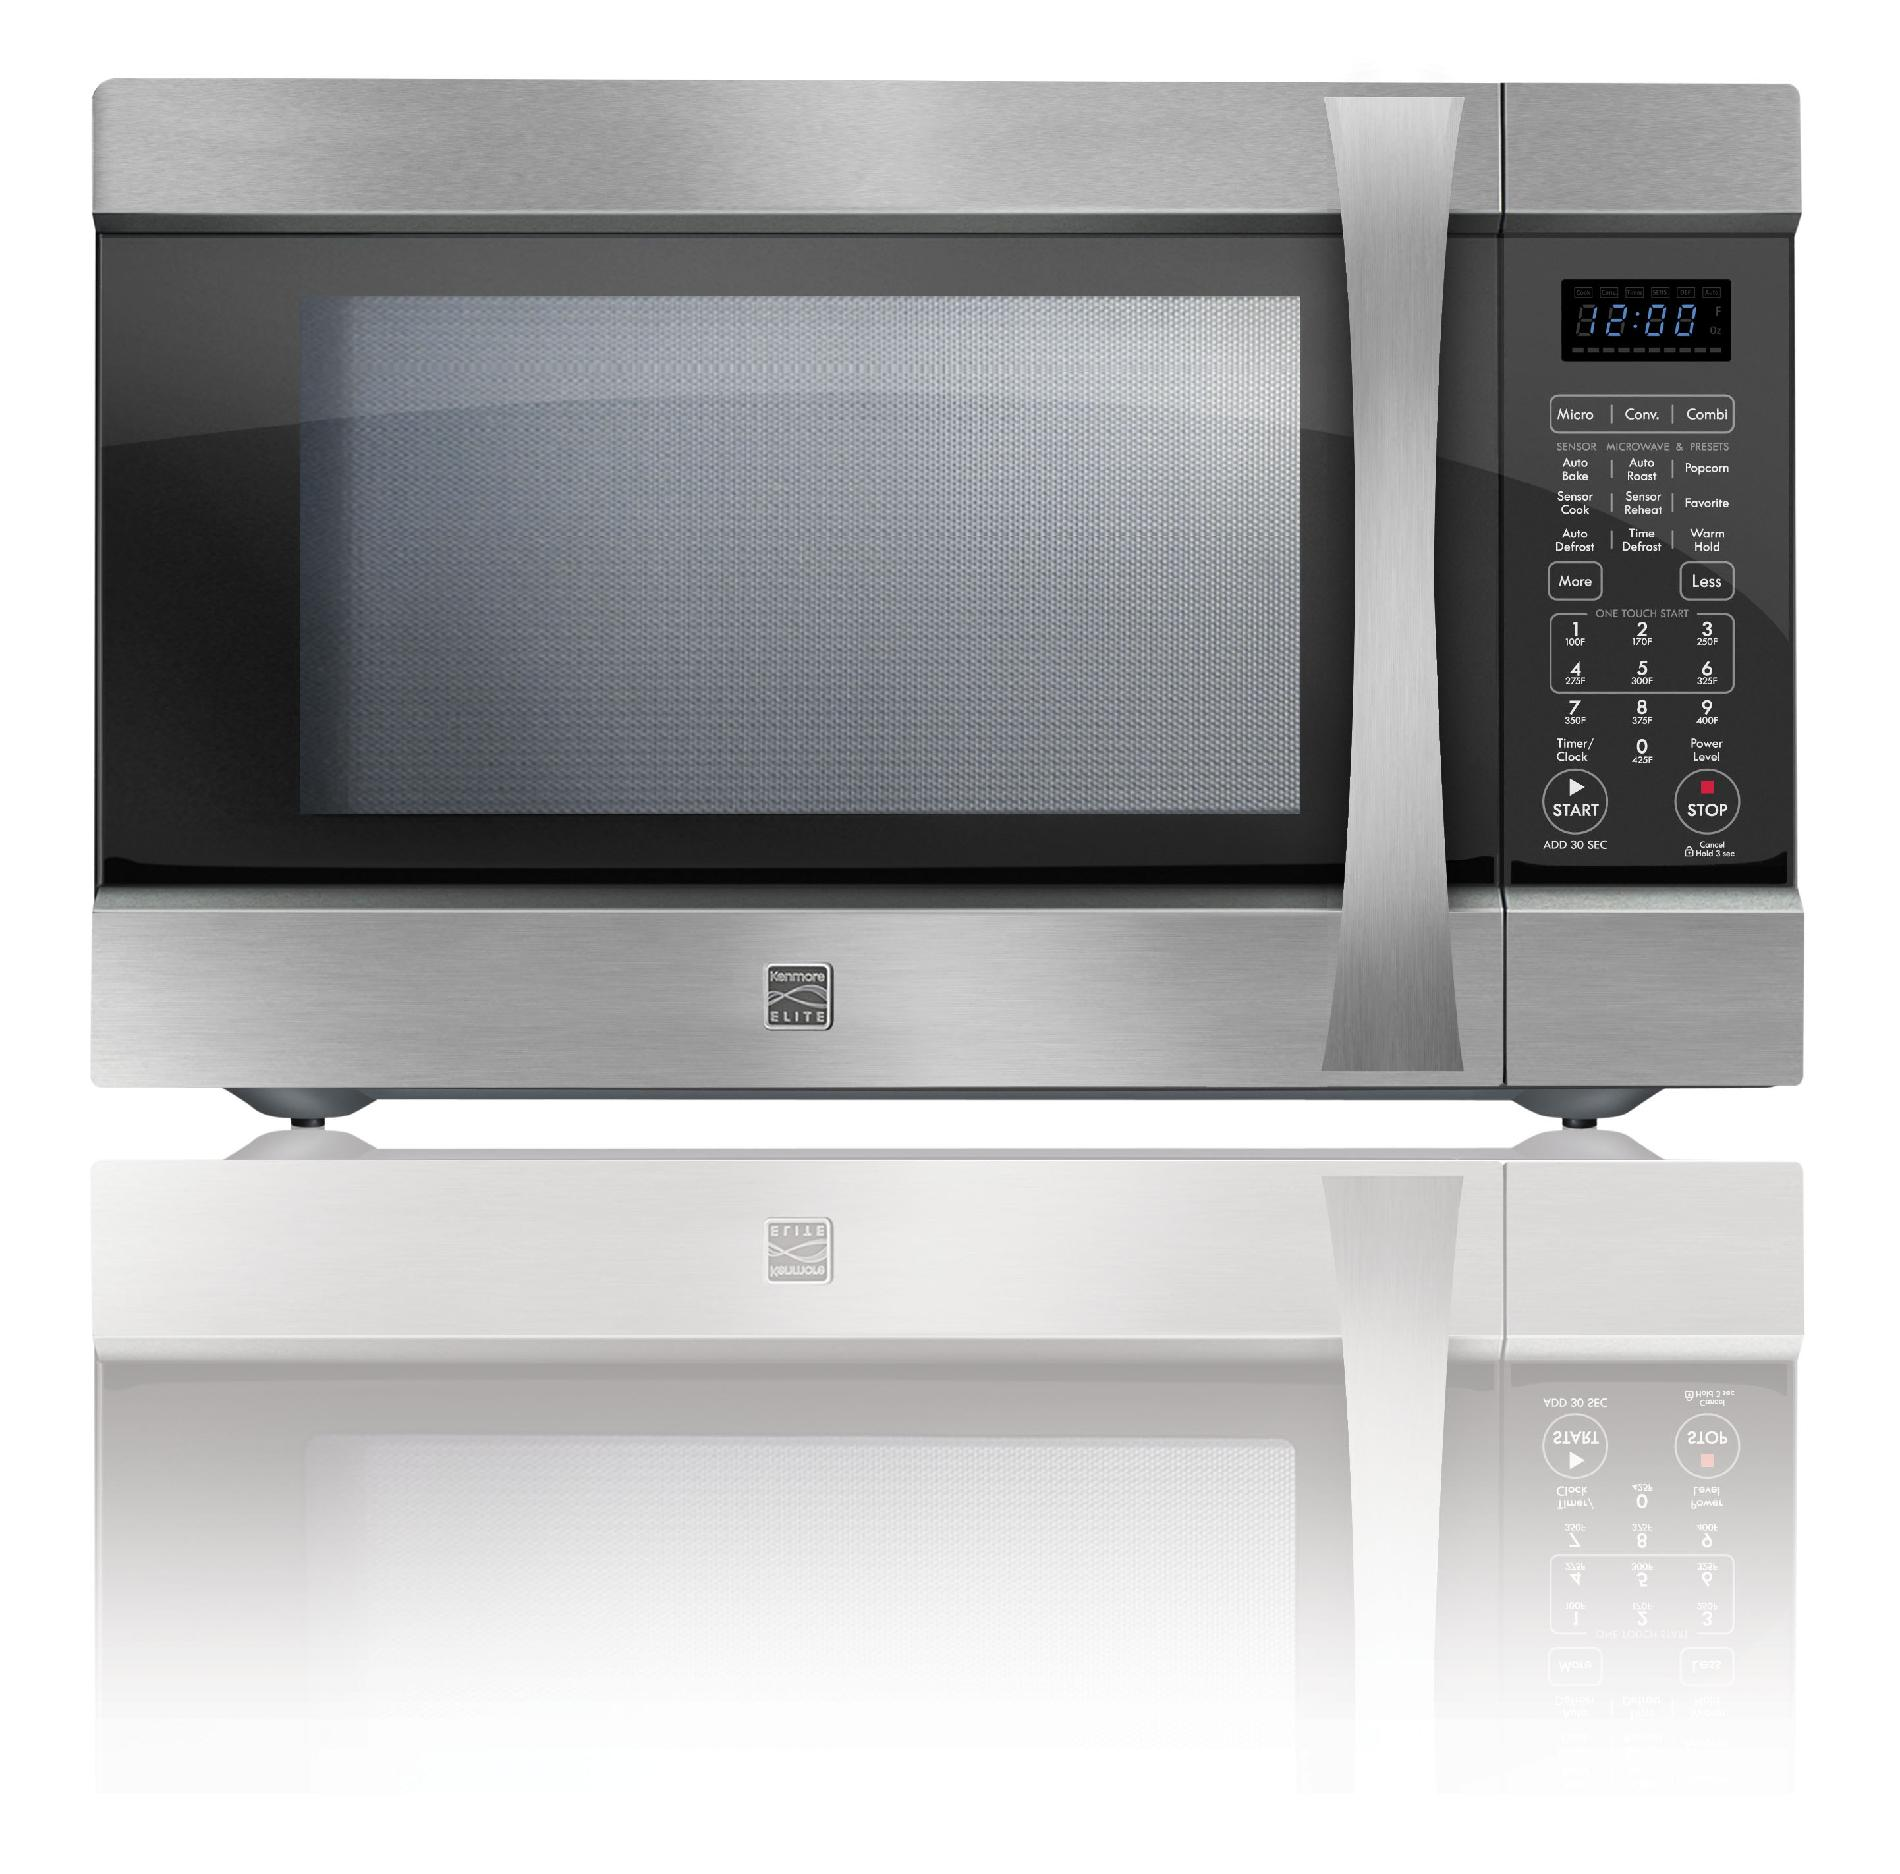 upc 839724009897 1 5 cu ft countertop microwave w convection stainless steel upcitemdb com